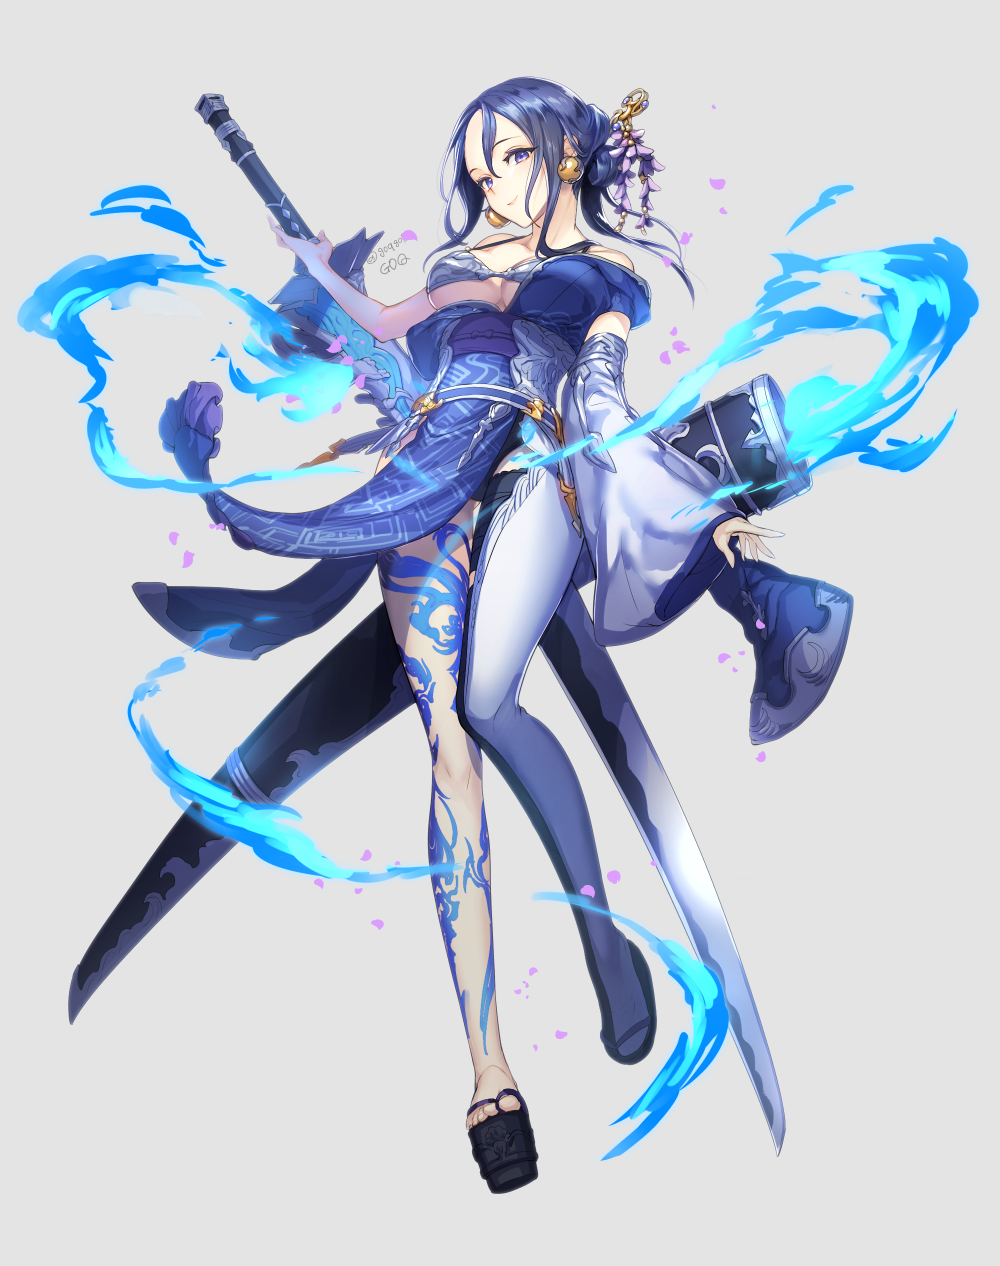 1girl bare_shoulders bikini_top black_hair breasts cleavage dress earrings flower goqgoq grey_background hair_flower hair_ornament highres holding holding_sword holding_weapon japanese_clothes jewelry kaguya_hime_(sinoalice) kimono large_breasts long_hair off_shoulder sash sheath simple_background single_thighhigh sinoalice smile solo sword thigh-highs tied_hair violet_eyes weapon